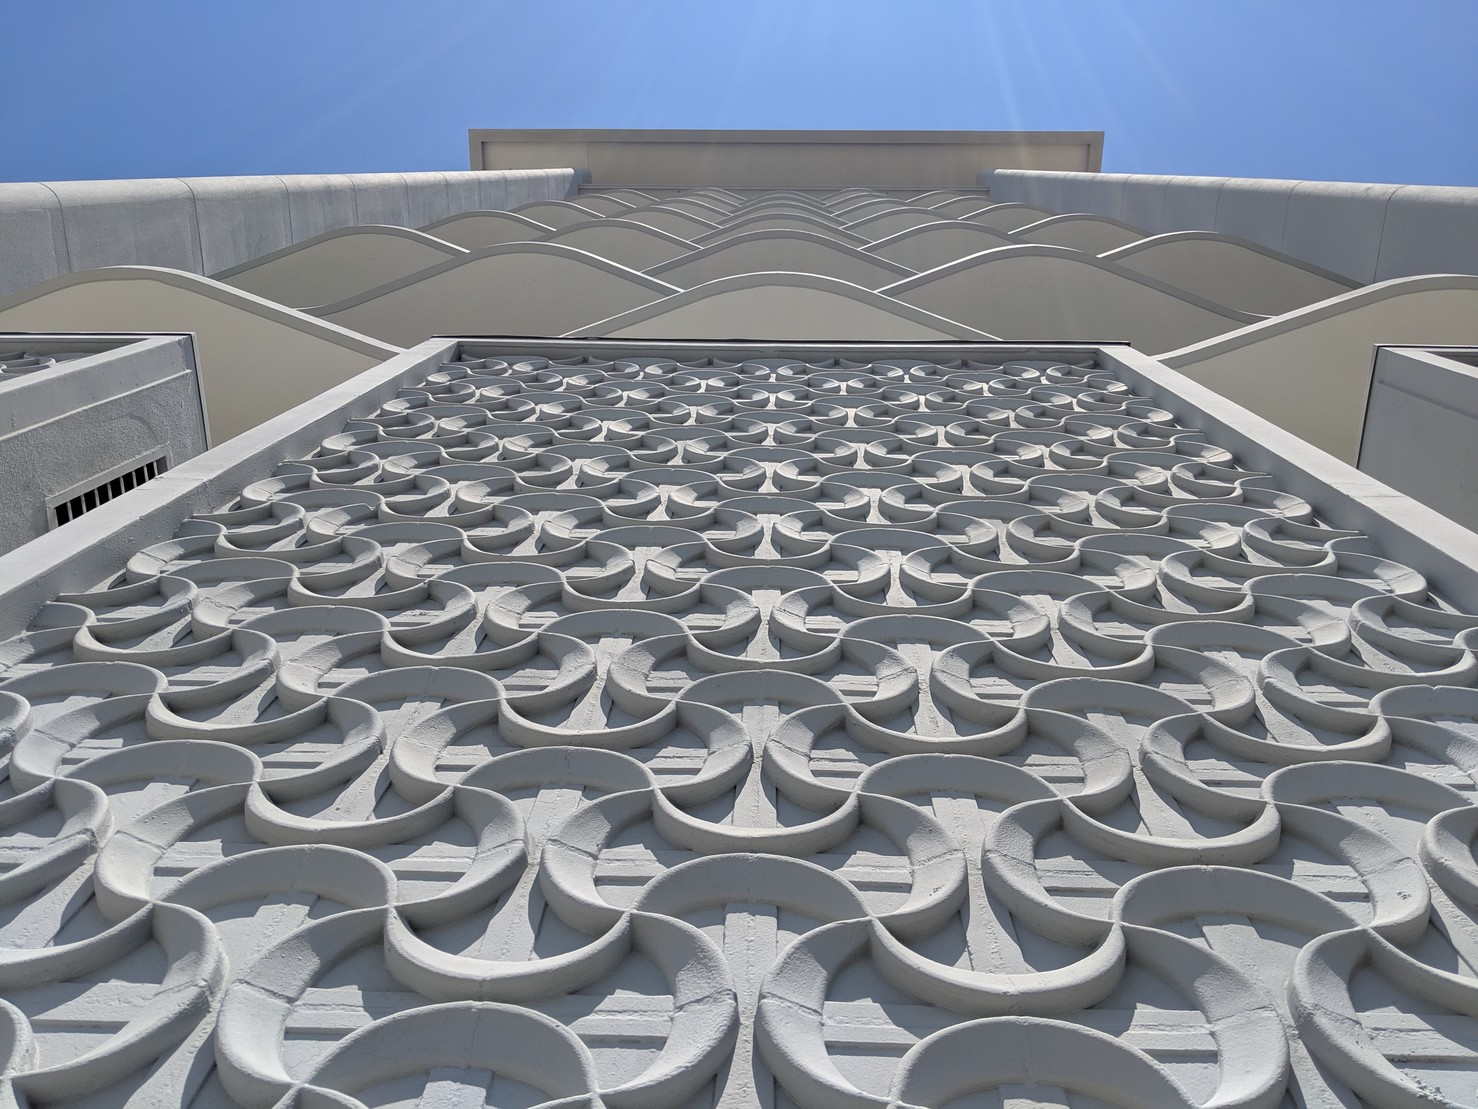 Curved patterned facade